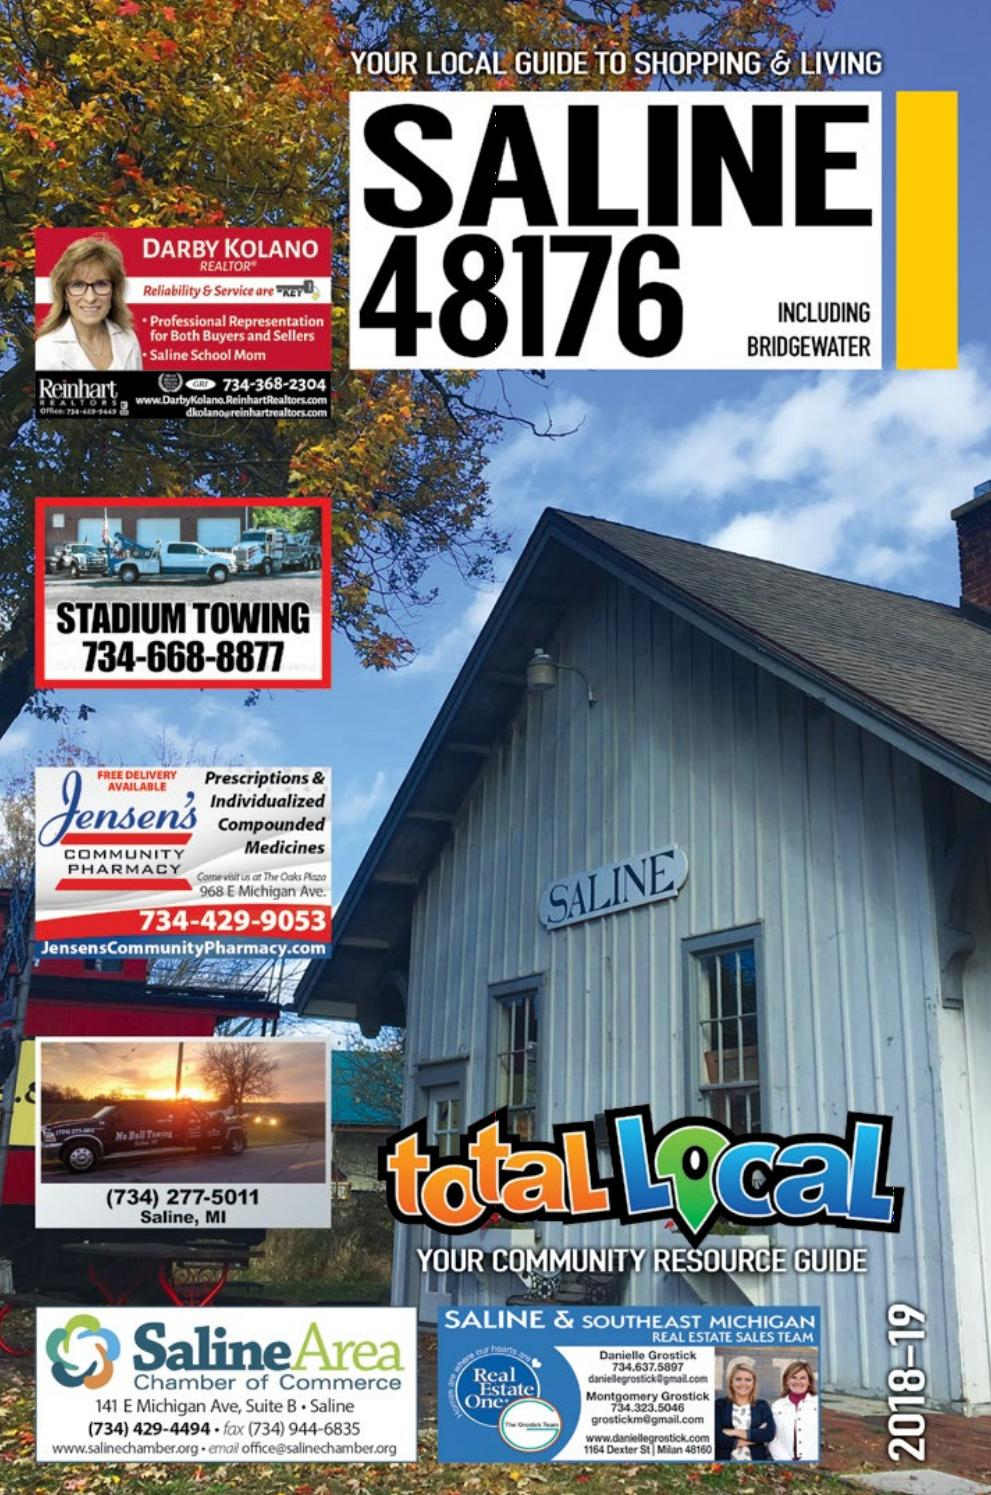 Total Local 2018 19 Saline Mi Community Resource Guide By Total